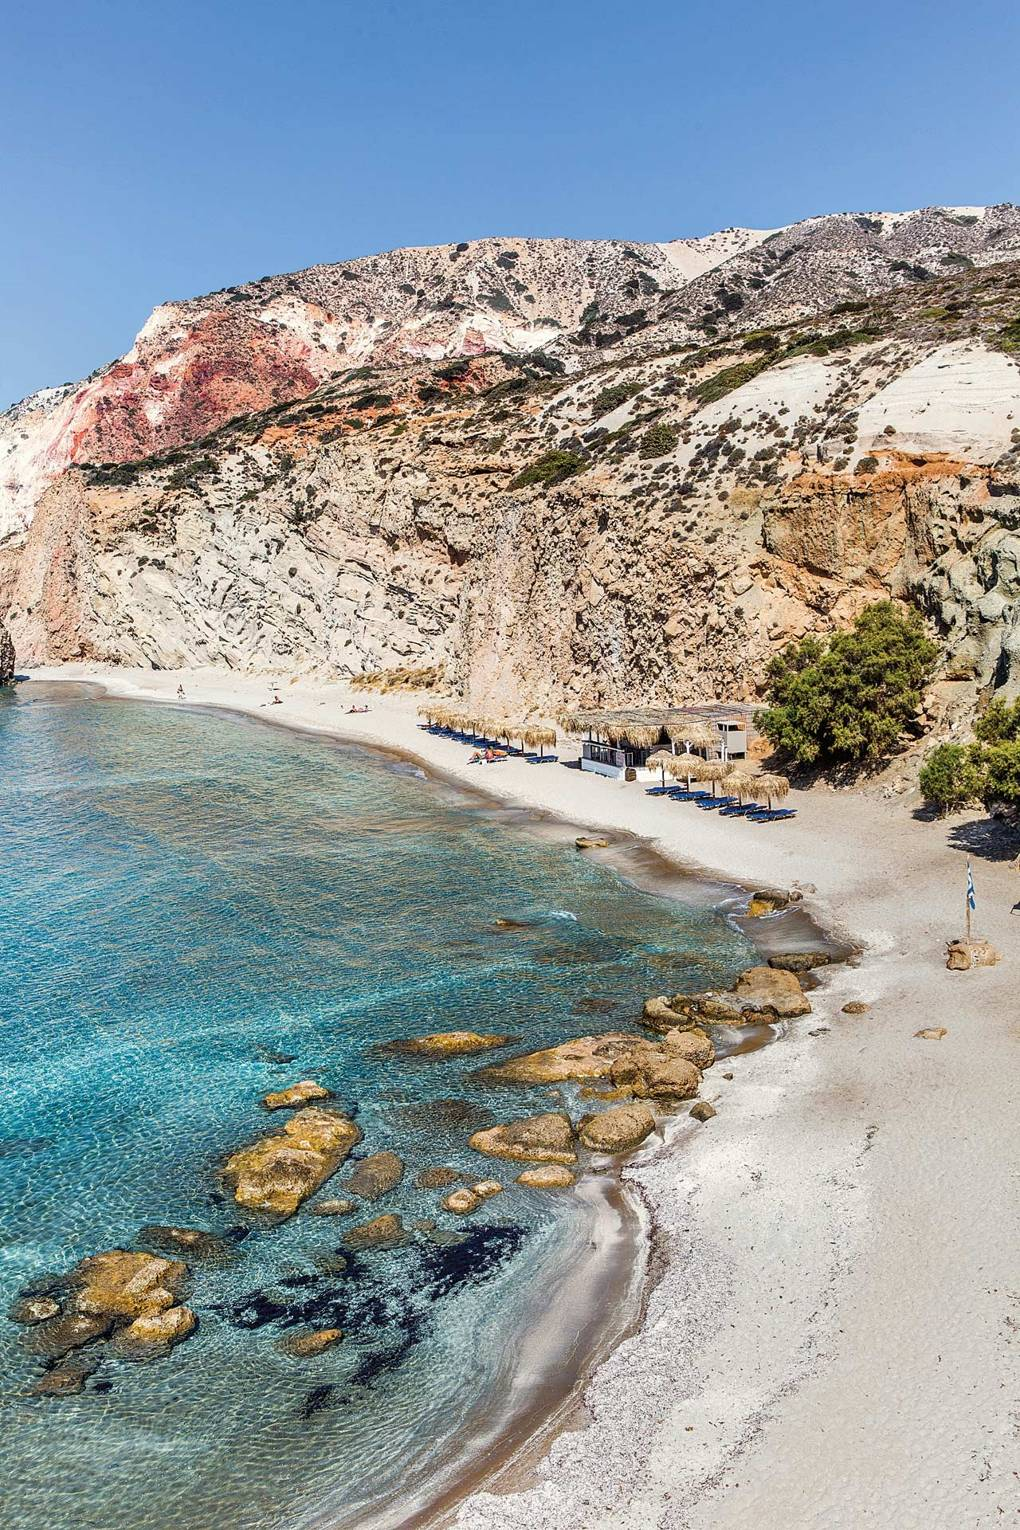 Milos - The Greek island youve been waiting to hear about